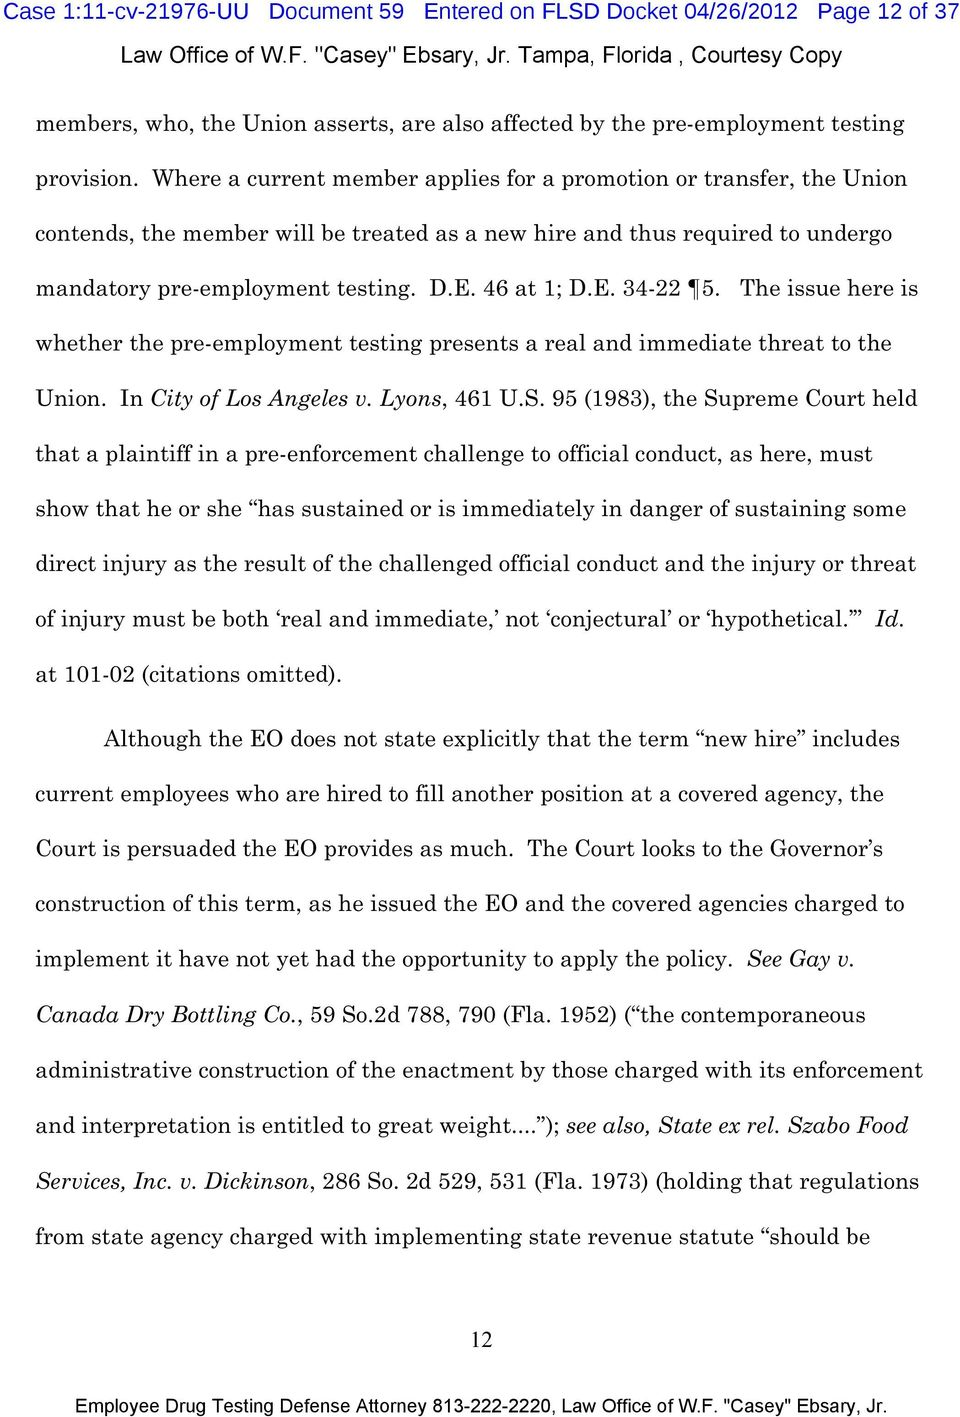 E. 34-22 5. The issue here is whether the pre-employment testing presents a real and immediate threat to the Union. In City of Los Angeles v. Lyons, 461 U.S.